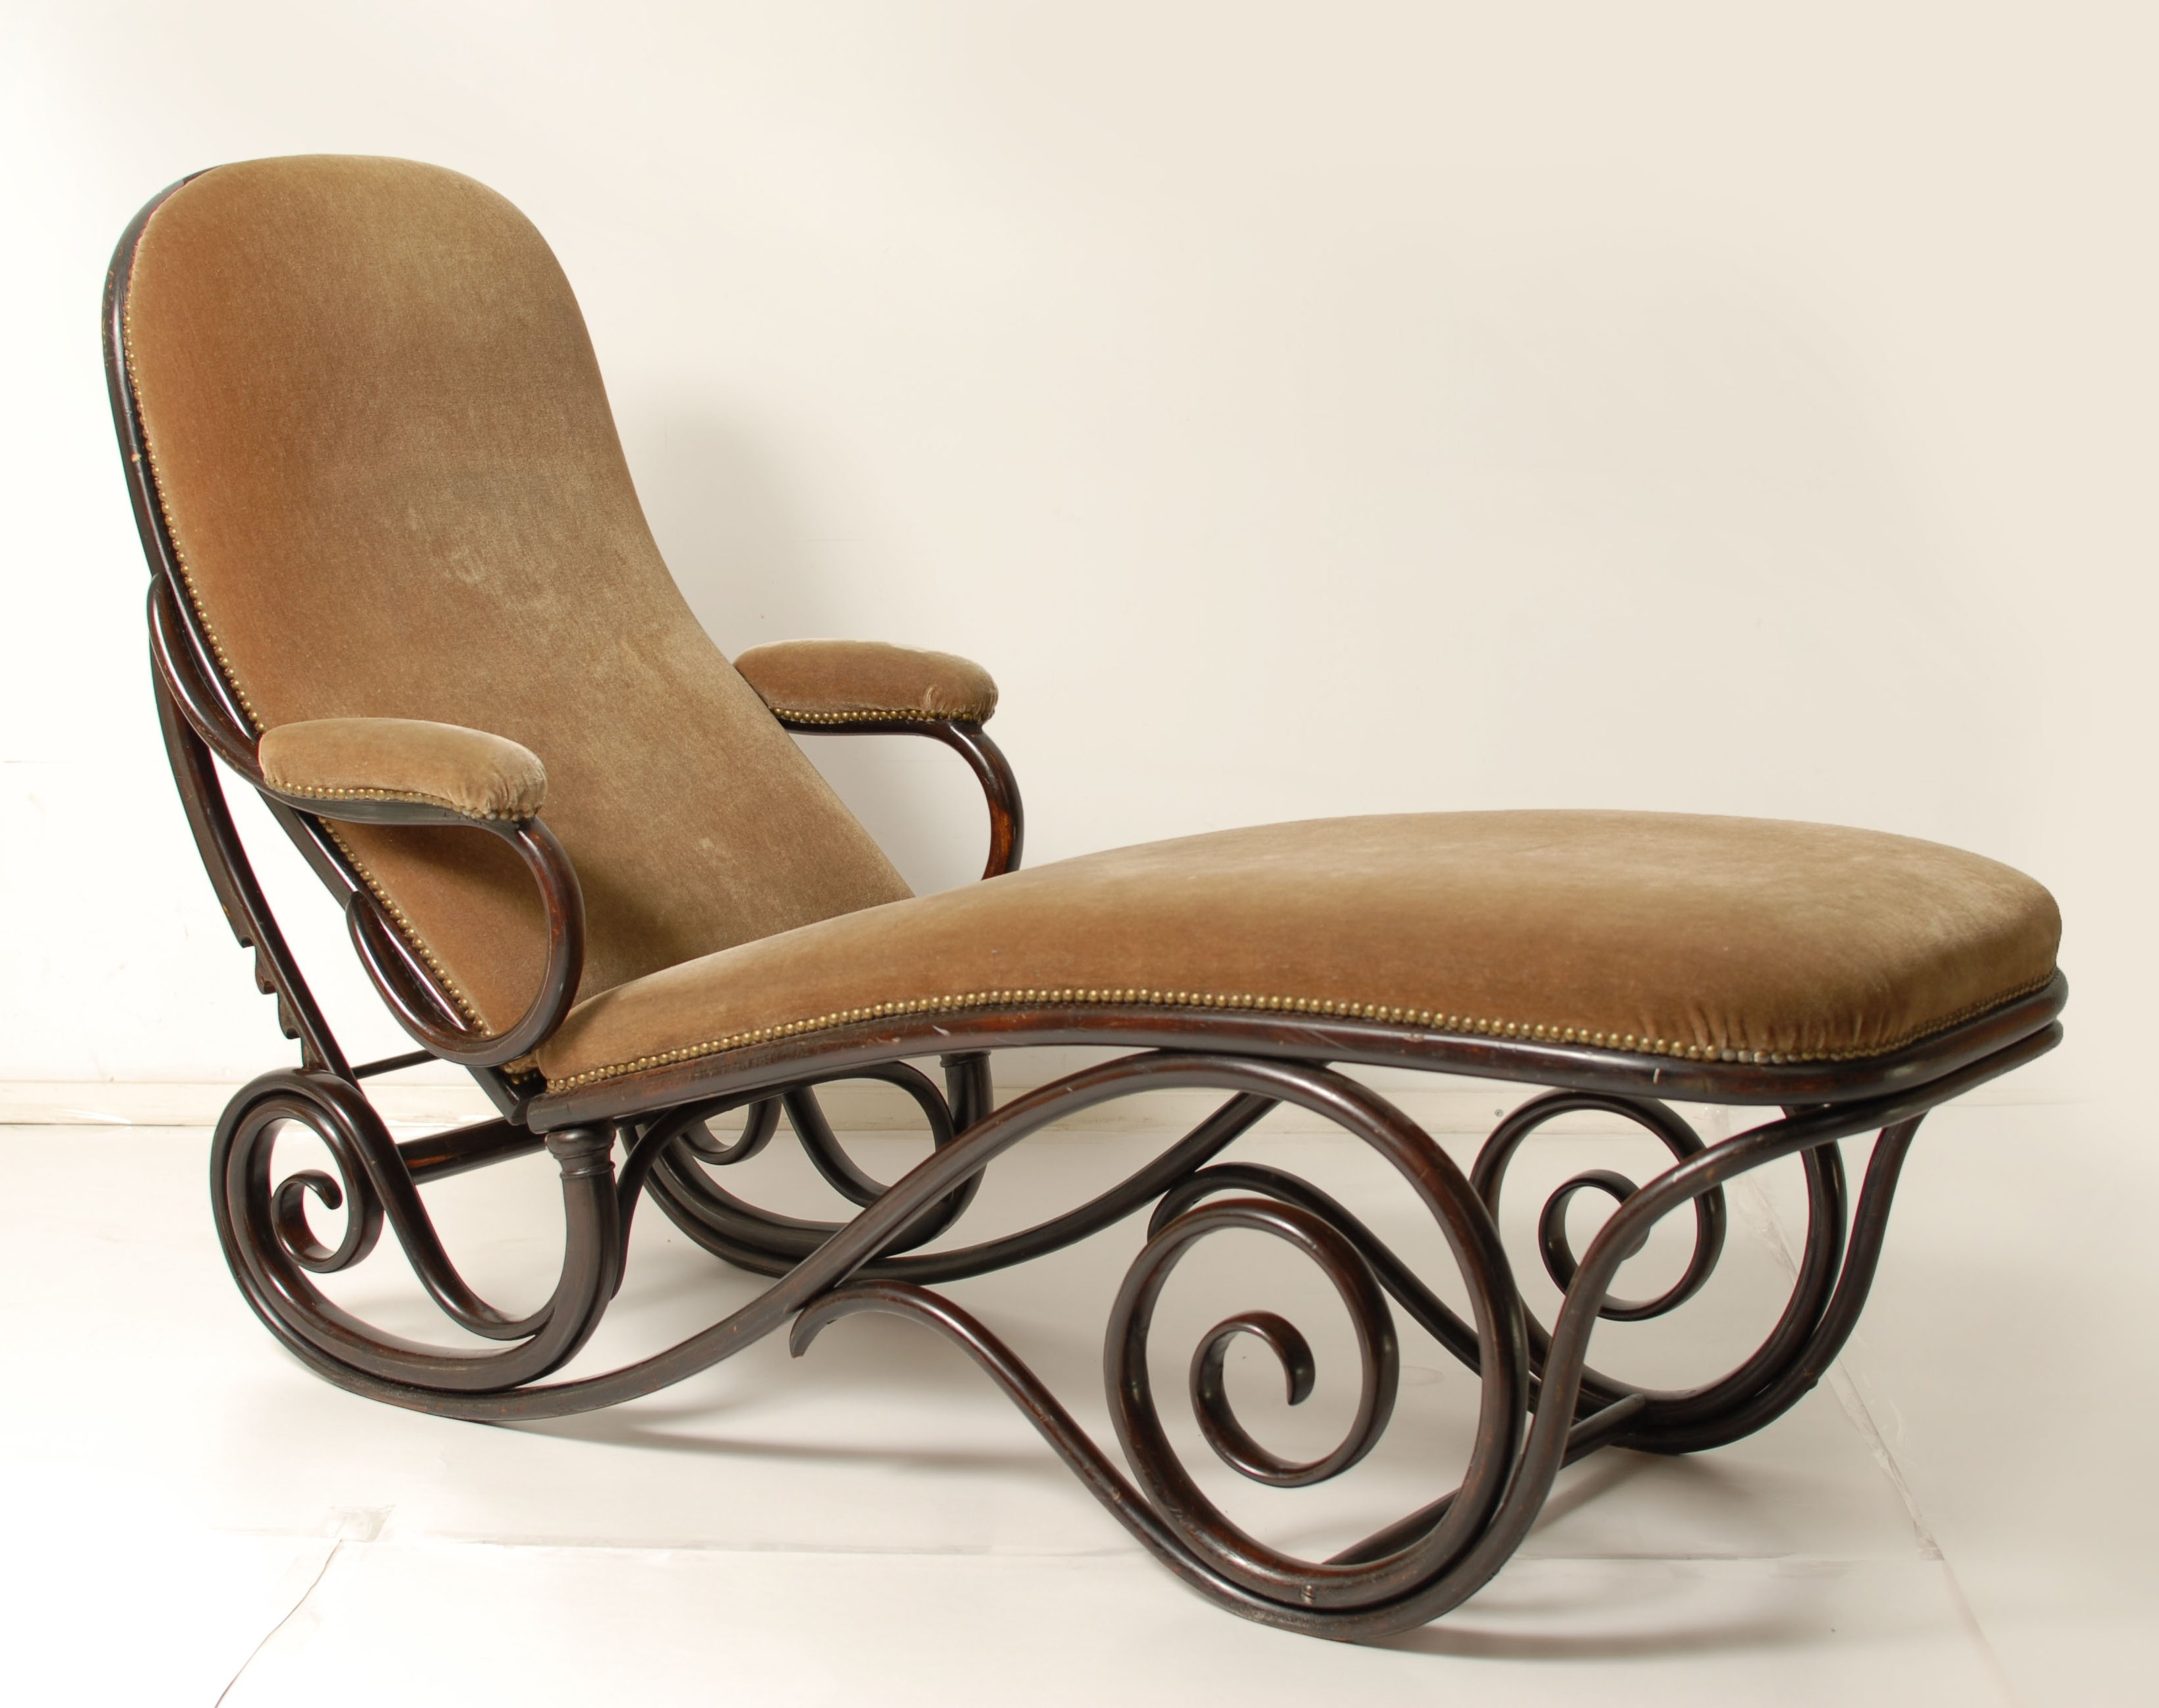 Bentwood Chaise Lounge Lounge Chair By Michael Thonet For Thonet